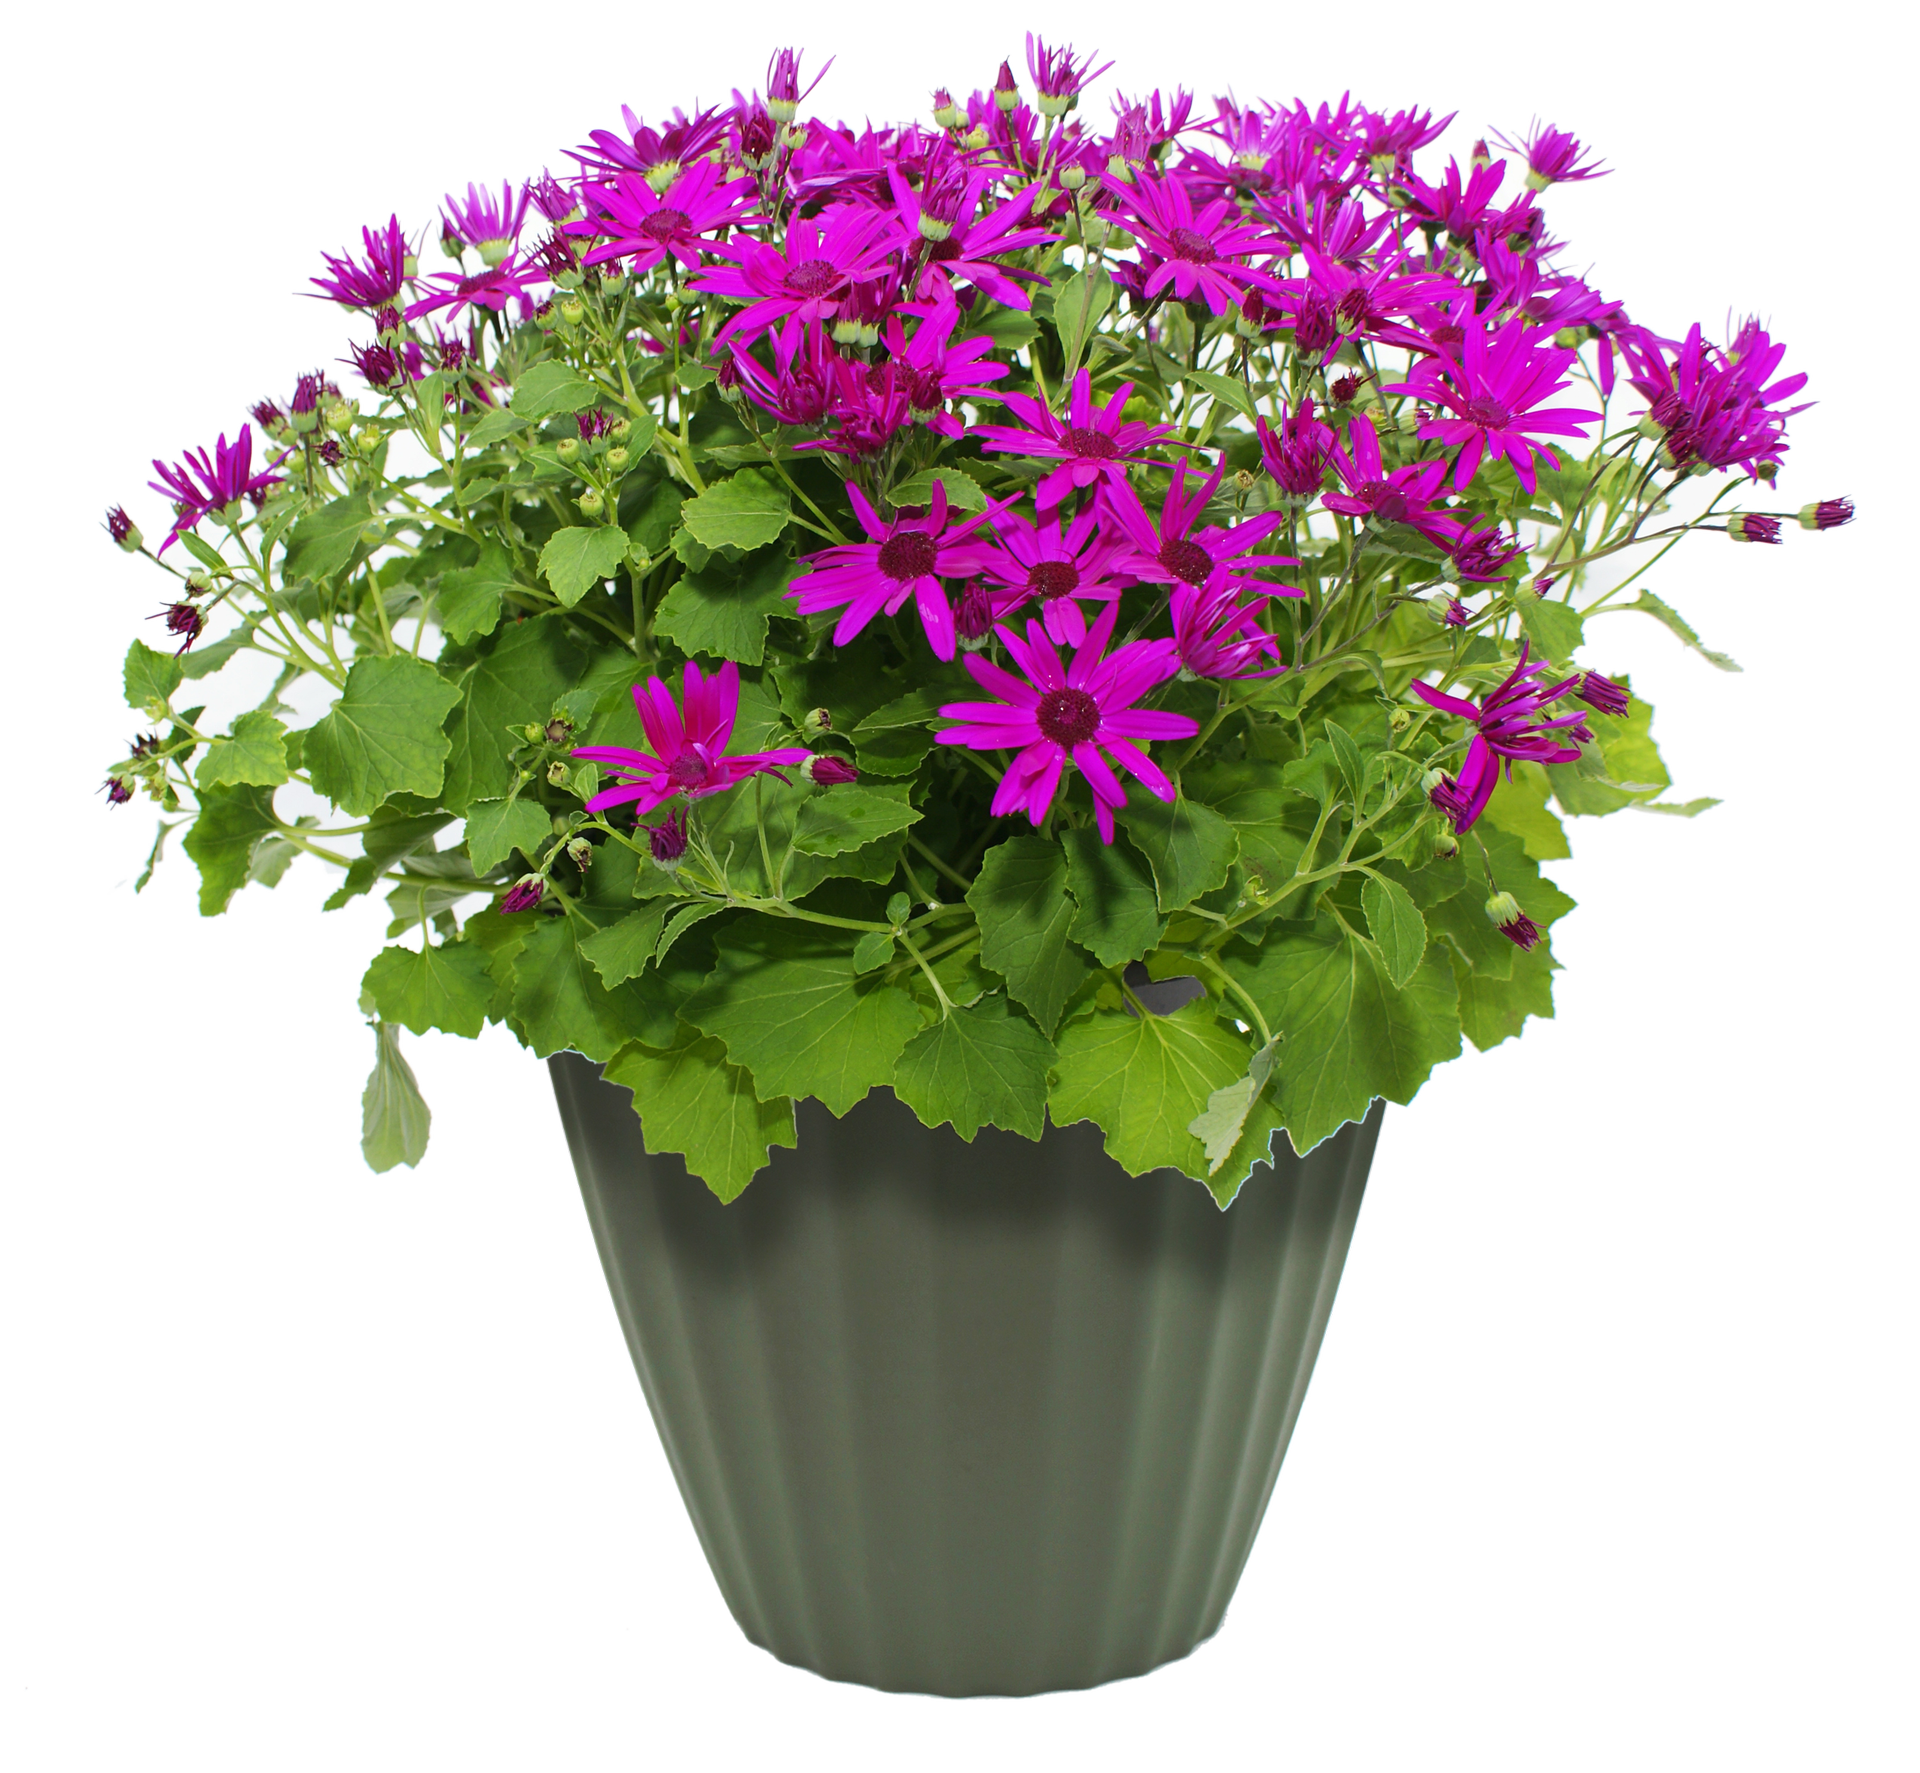 flower pot png transparent flower pot png images pluspng